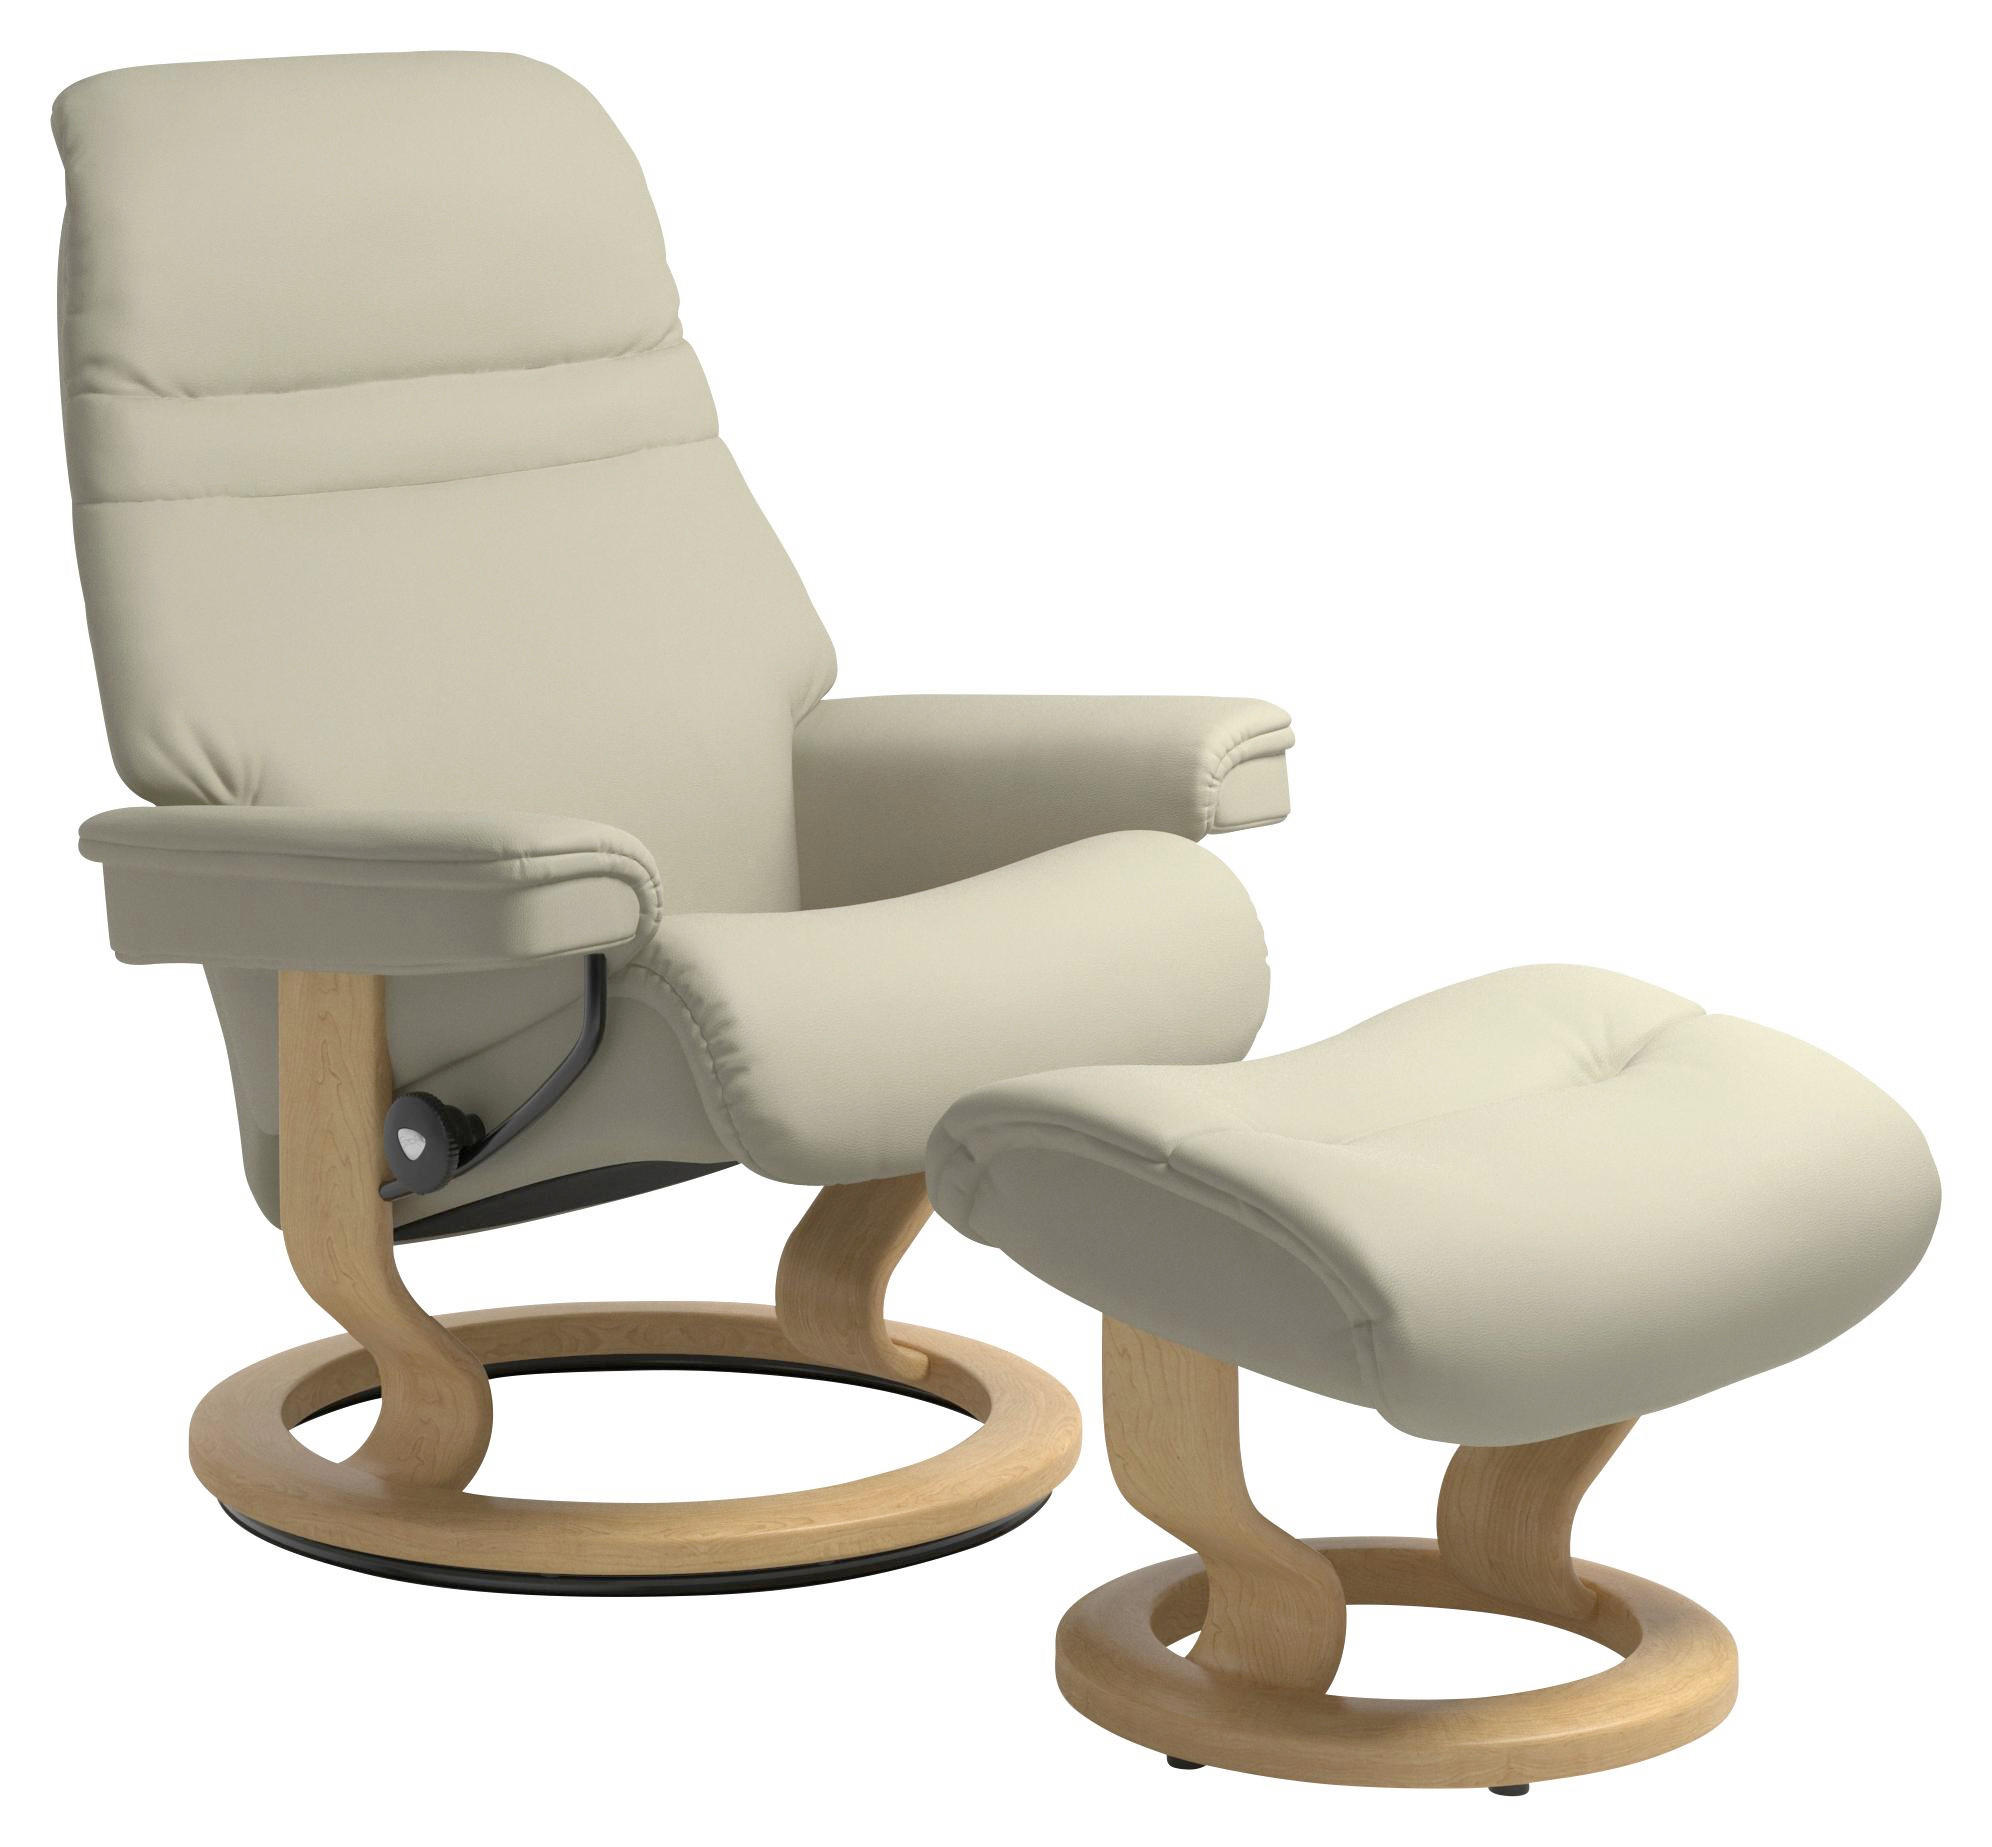 Stressless Sessel Sunrise.html Sesselset Sunrise L Echtleder Hocker